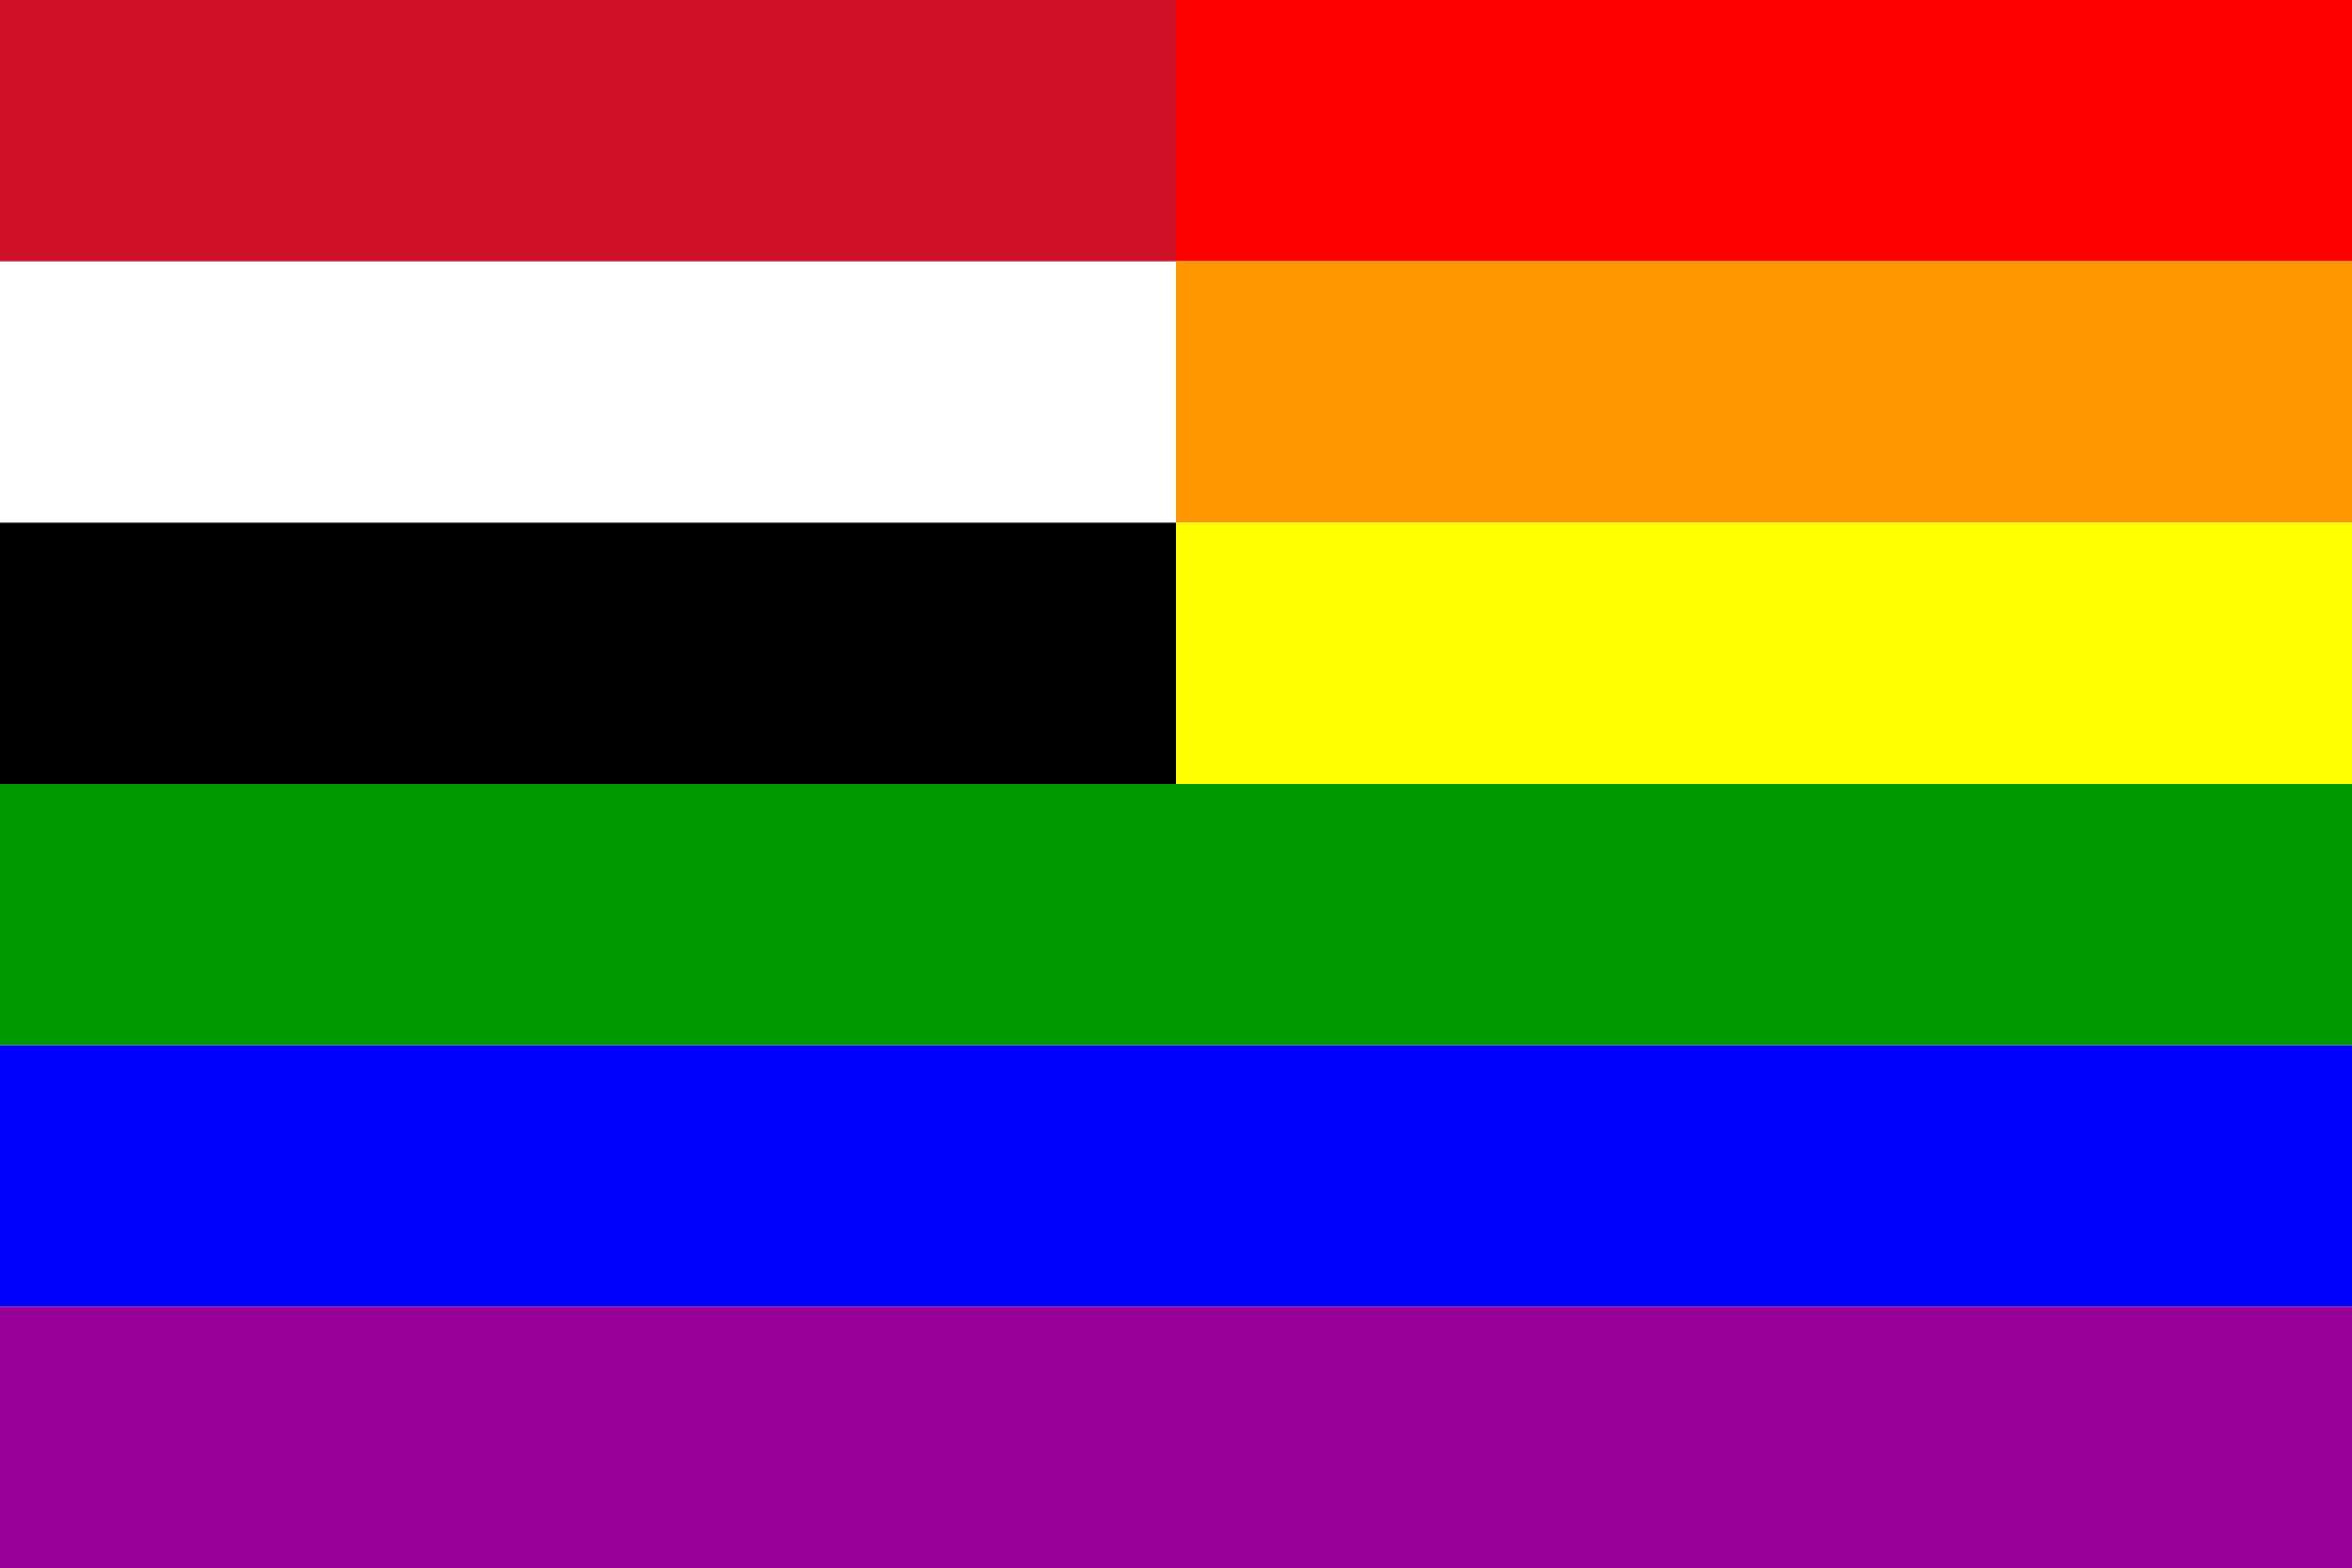 Yemen Rainbow Flag by AdamStanislav